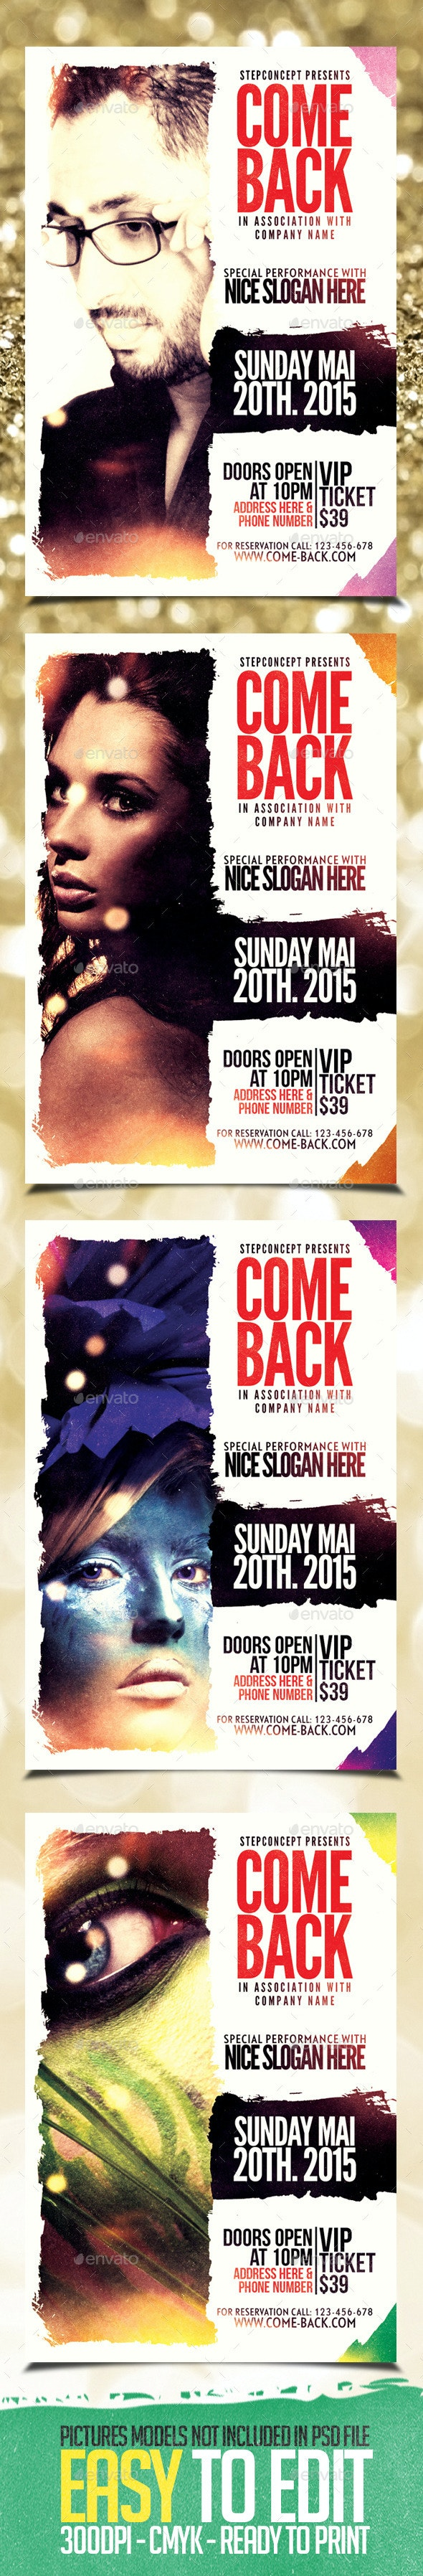 Come Back Flyer Template - Events Flyers